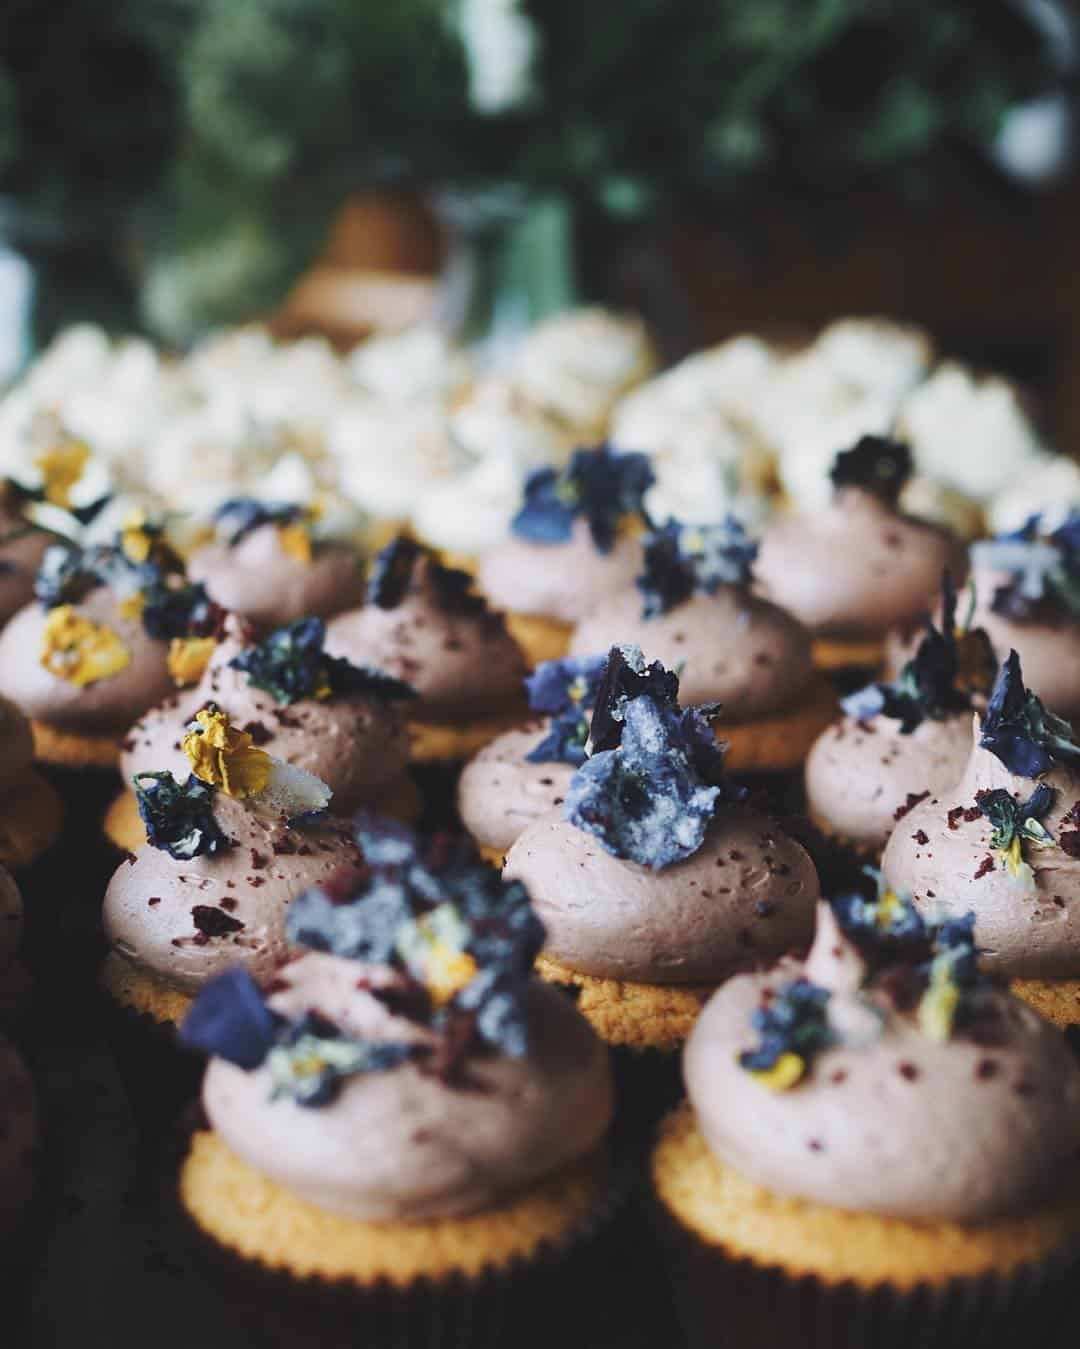 Chocolate cupcakes, butter cream frosting and the prettiest sugared flowers